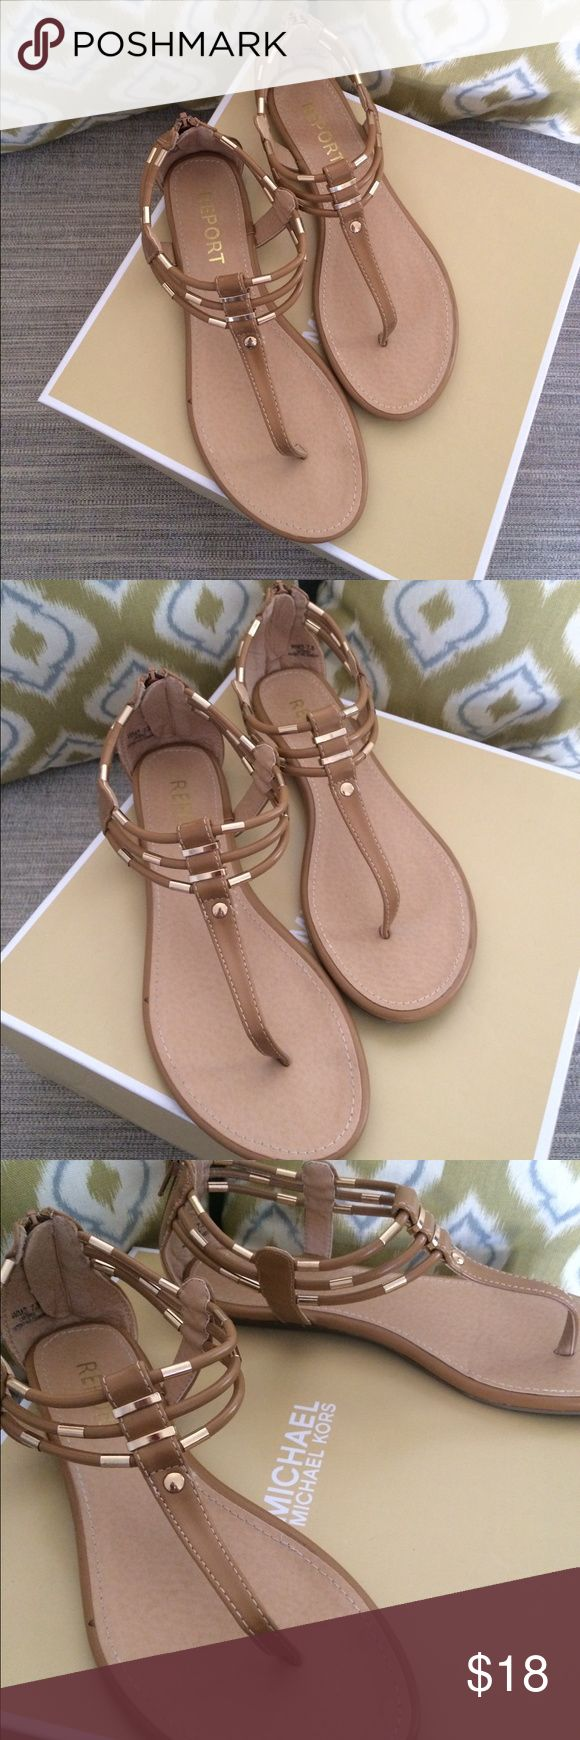 Beige Sandals w/ Gold Hardware Beige sandals in excellent condition!! Practically new and literally only used for a few hours. Embellished with gold hardware and zips up back. Purchased from Nordstrom Rack. Report Shoes